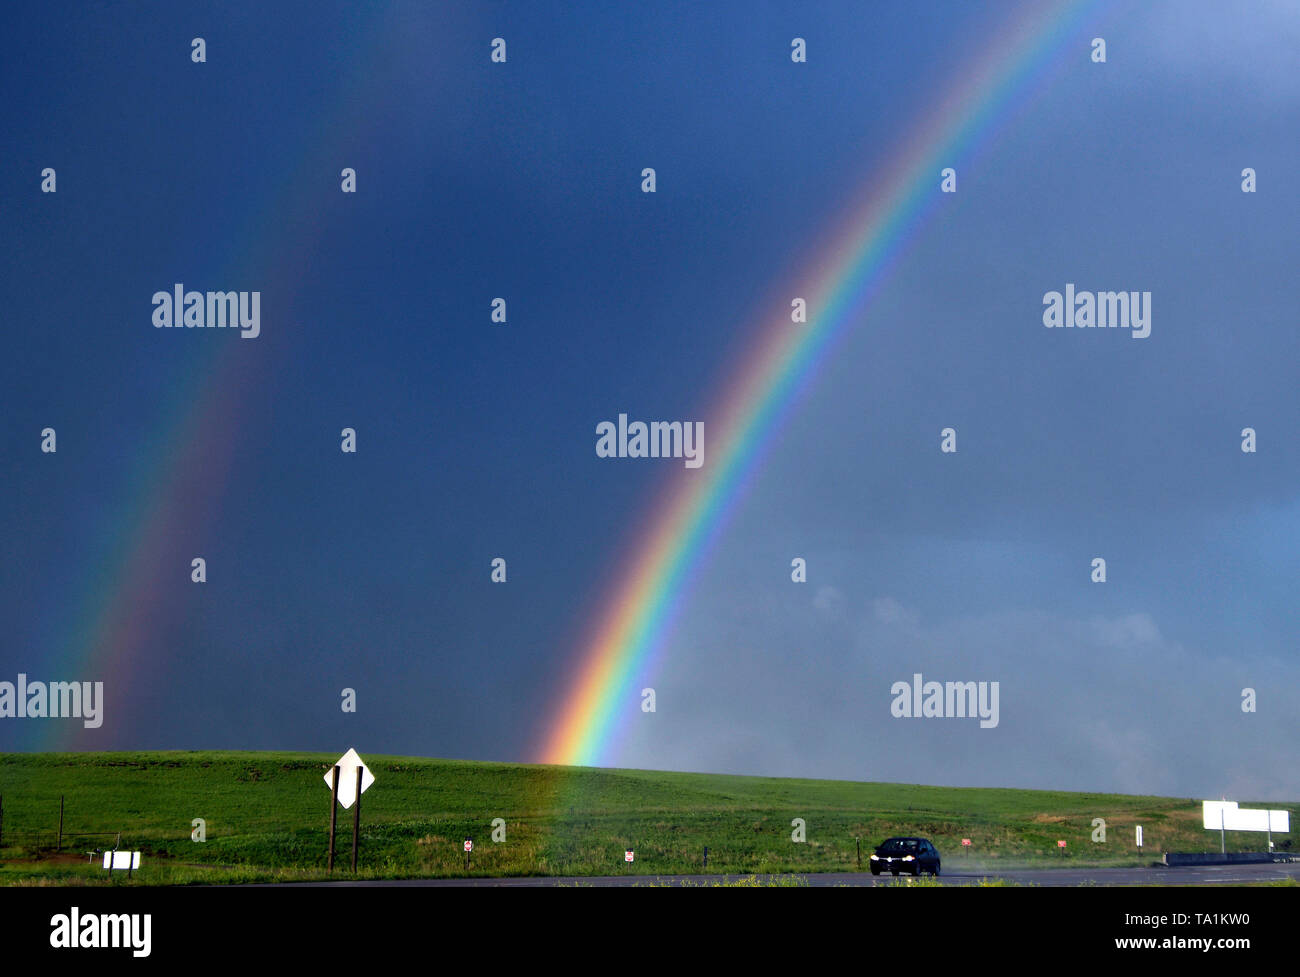 A rainbow forms from thunder storms cells east of Topeka KS Tuesday afternoon May 21, 2019. The thunder storms were moving up to 50 mph dumping more rain and strong winds with a few that went tornado warning. Severe continues to hit the mid west states this week. Photo by Gene Blevins/ZumaPress Credit: Gene Blevins/ZUMA Wire/Alamy Live News - Stock Image